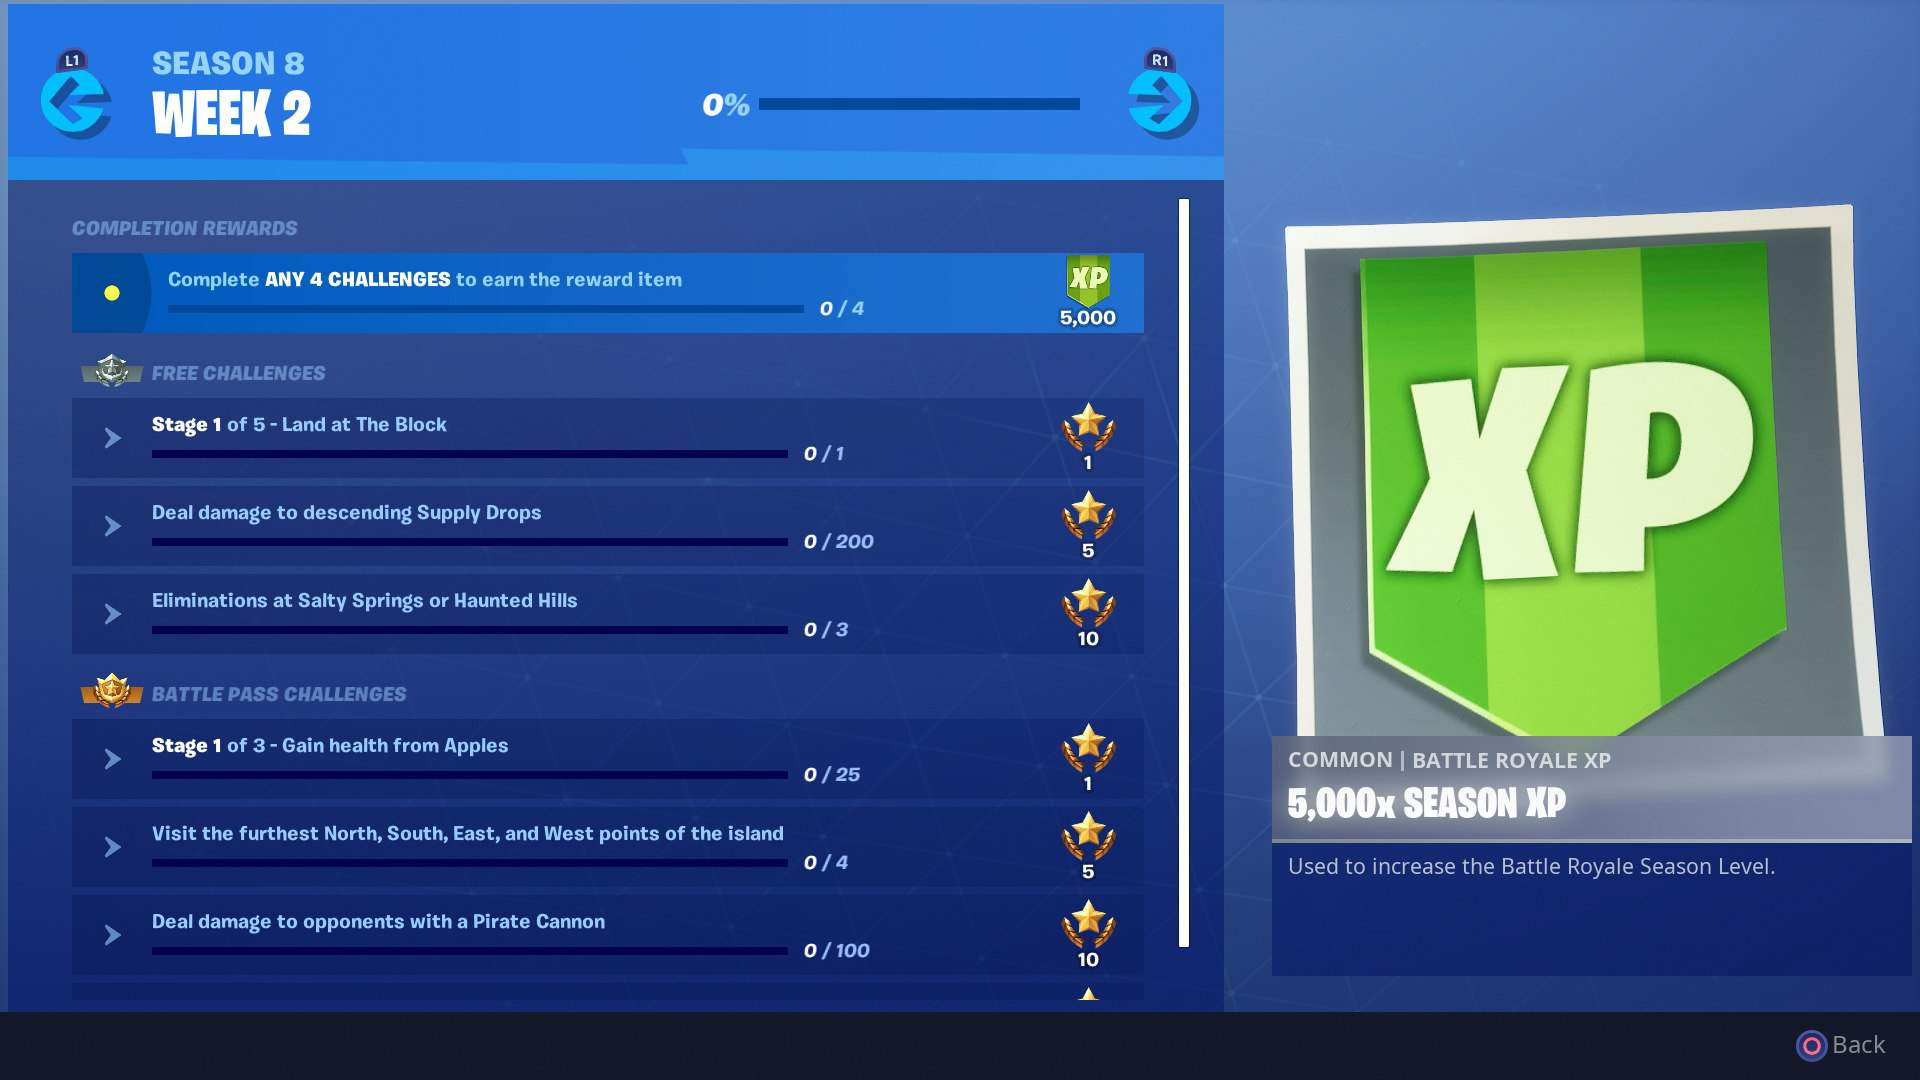 fortnite week 2 challenges of the season 8 battle pass are here including the deal damage to opponents with a pirate cannon challenge and visit the - where do apples spawn in fortnite season 8